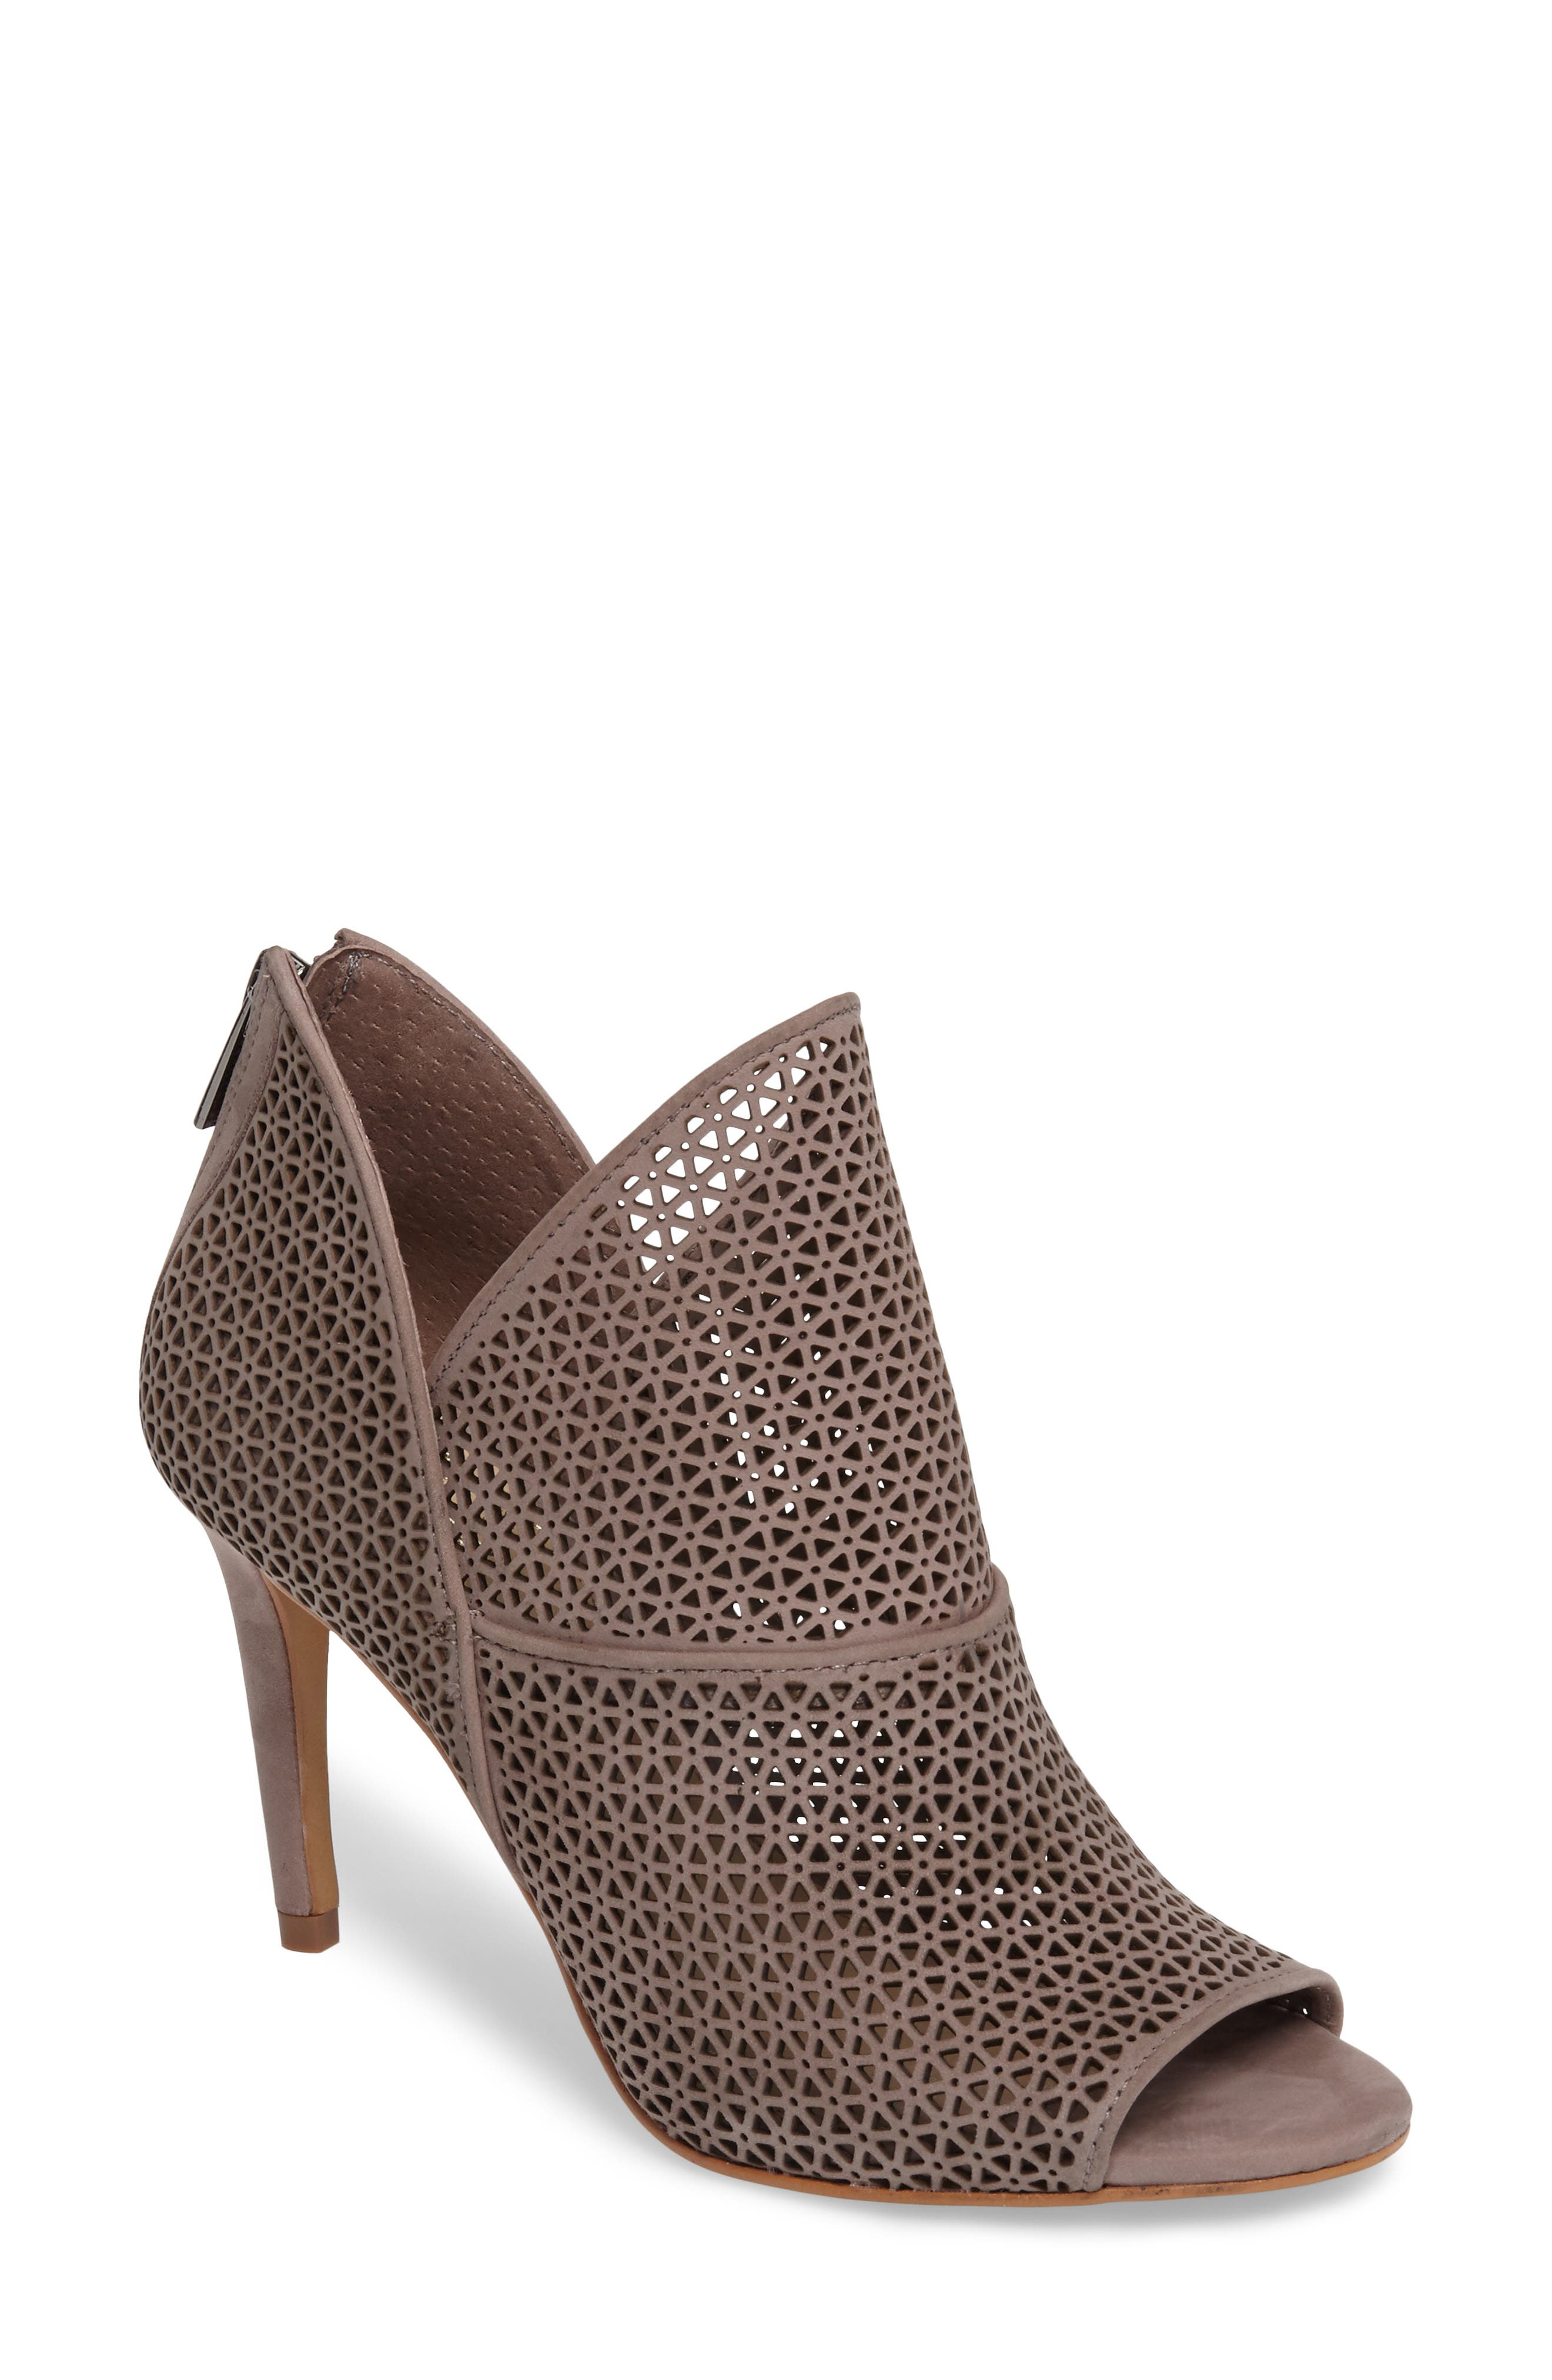 Alternate Image 1 Selected - Vince Camuto Vatena Bootie (Women)